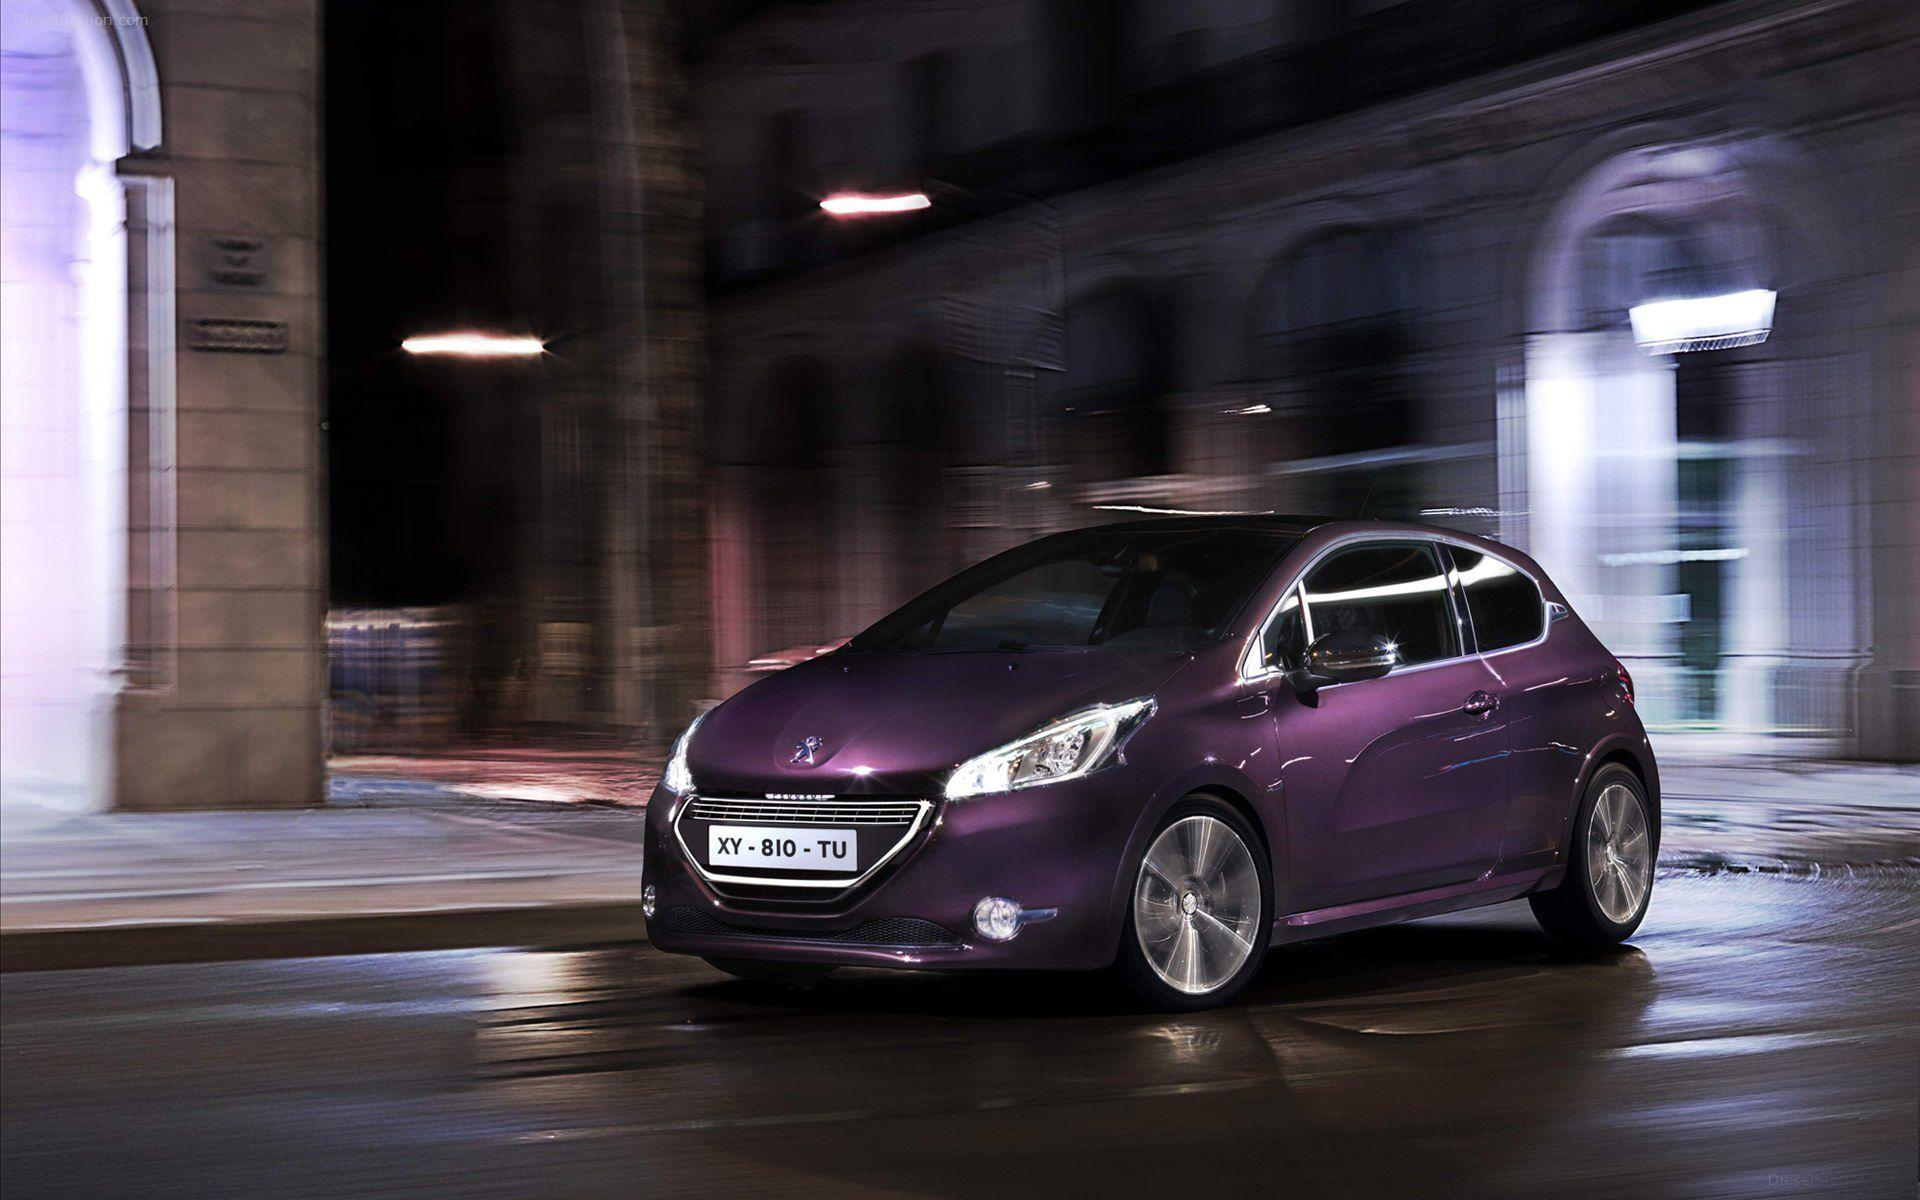 2013 Peugeot 208 XY Wallpapers